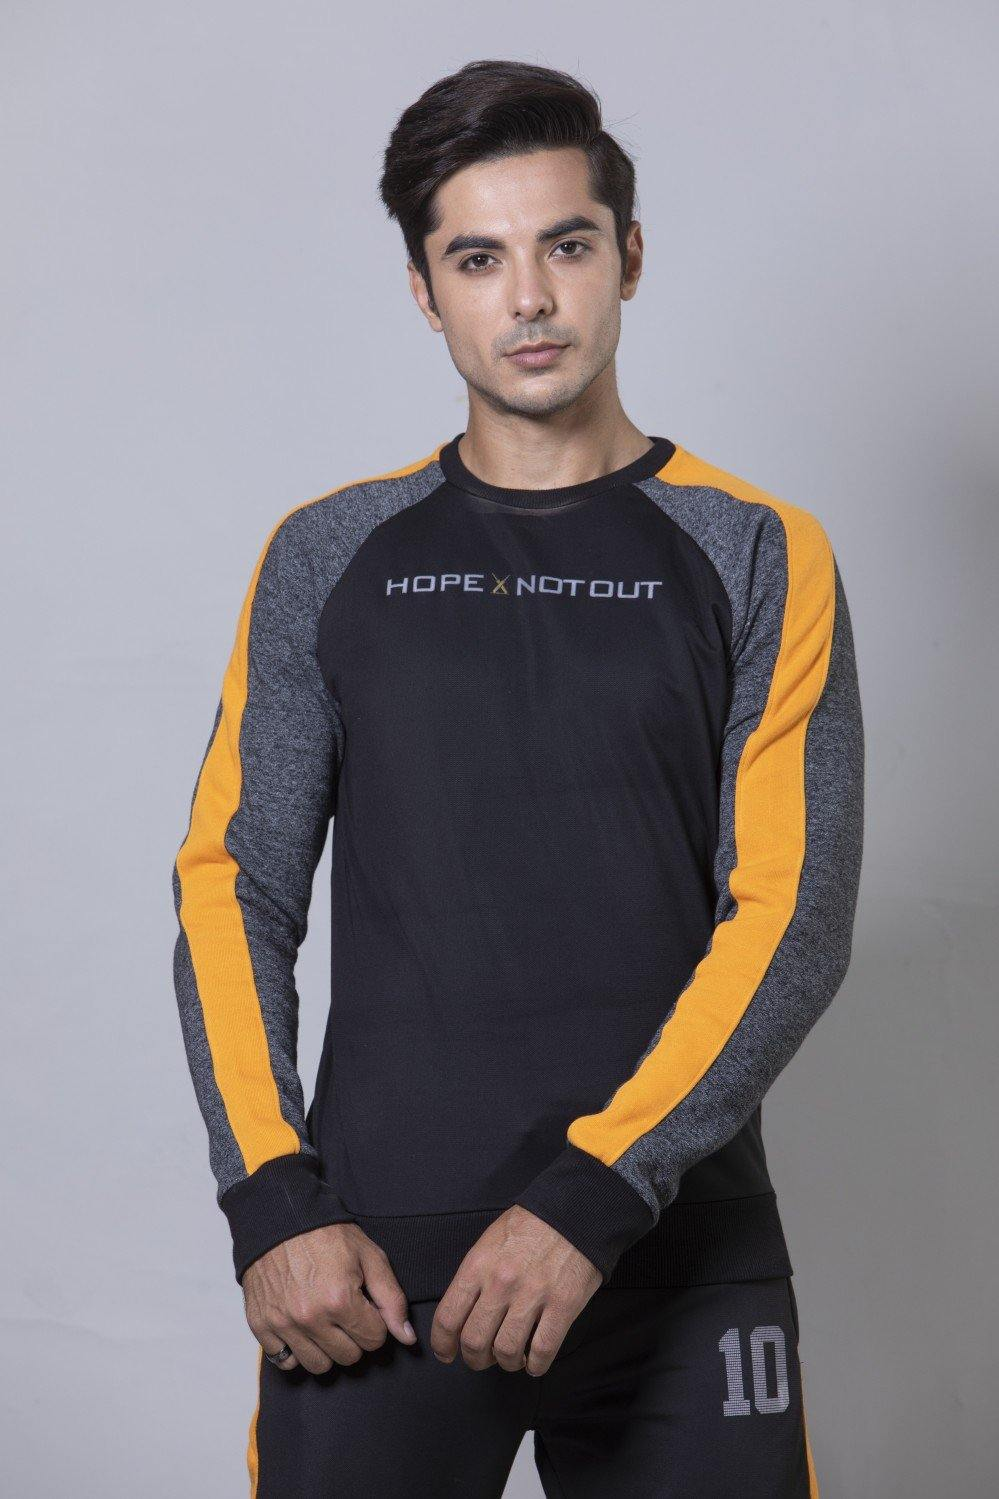 Black Athleisure Set HMTSF20004 - HOPE NOT OUT